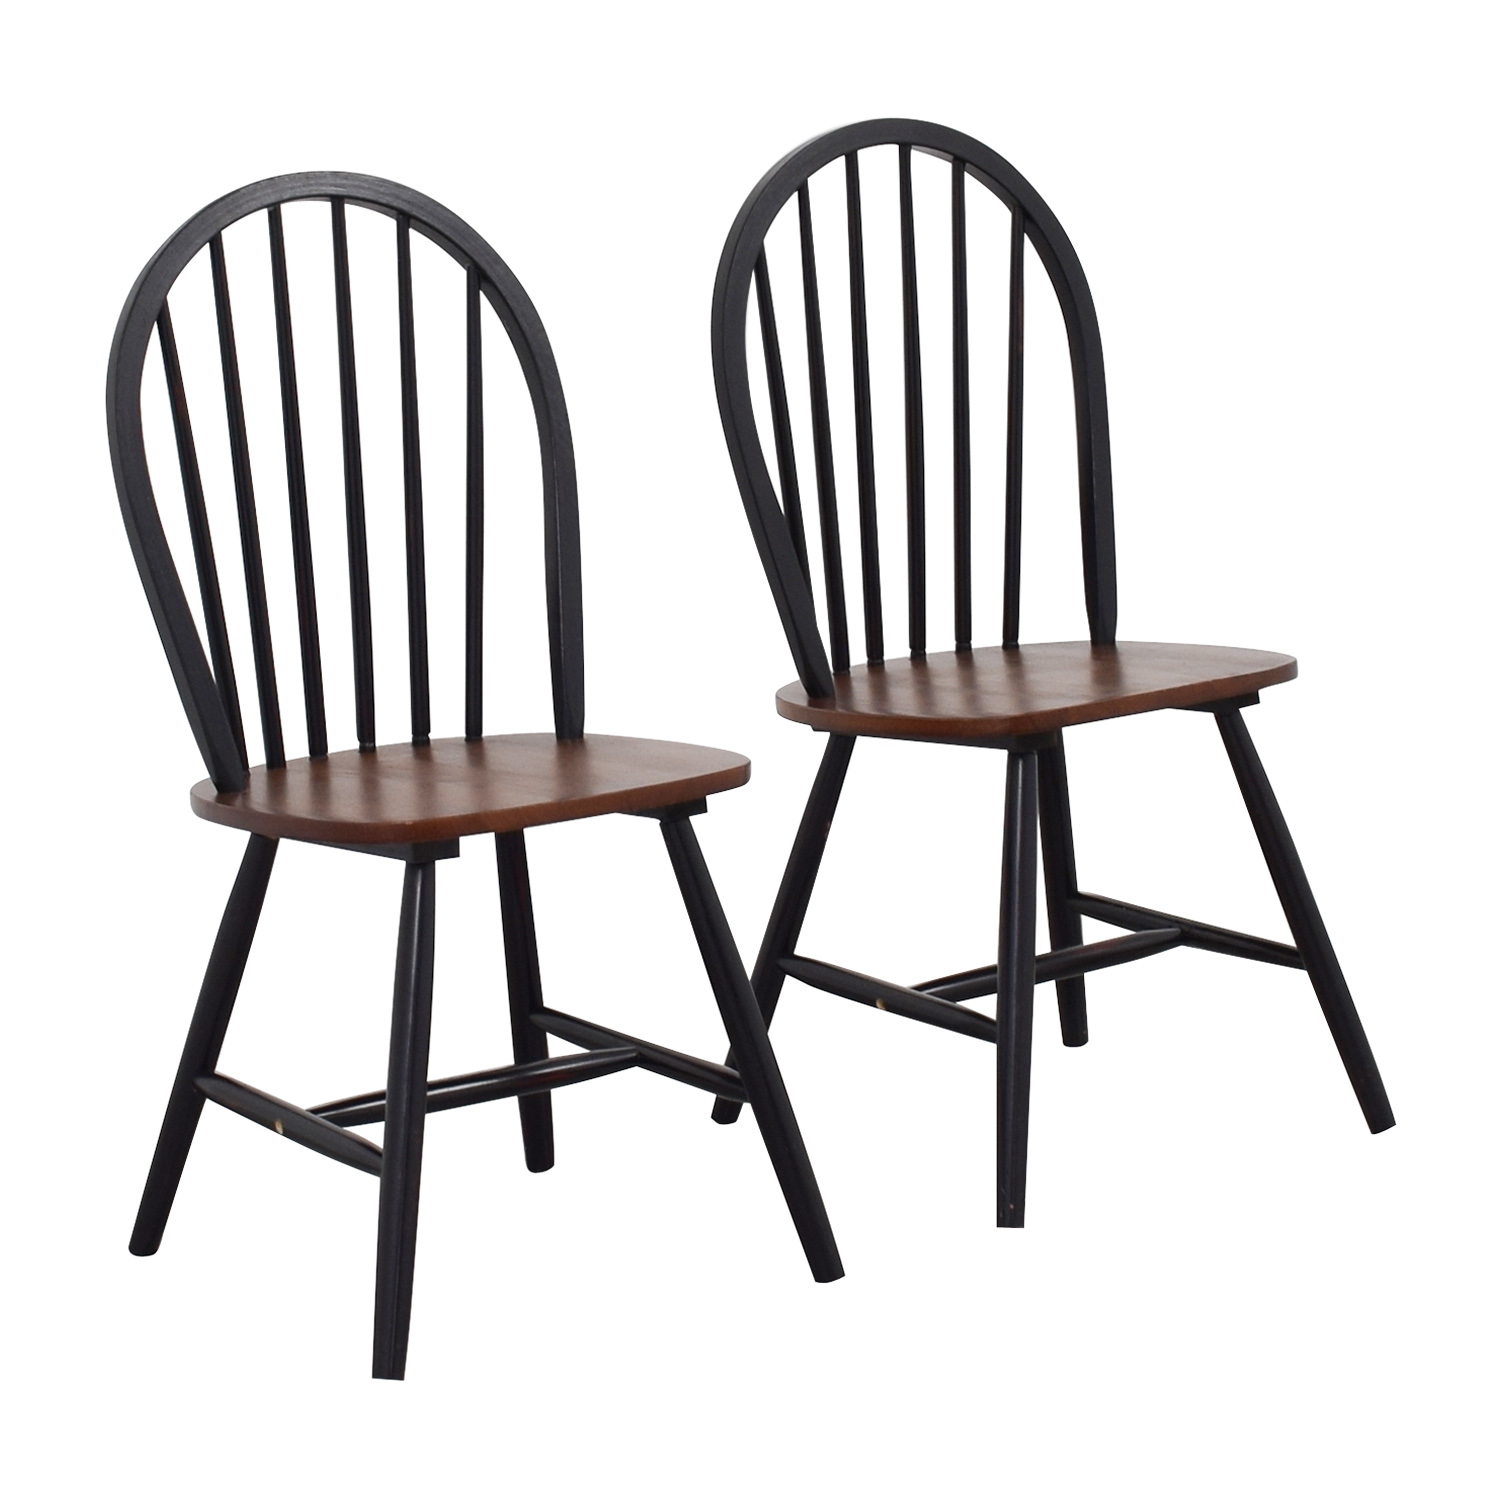 Two-Tone Wood Dining Chairs on sale